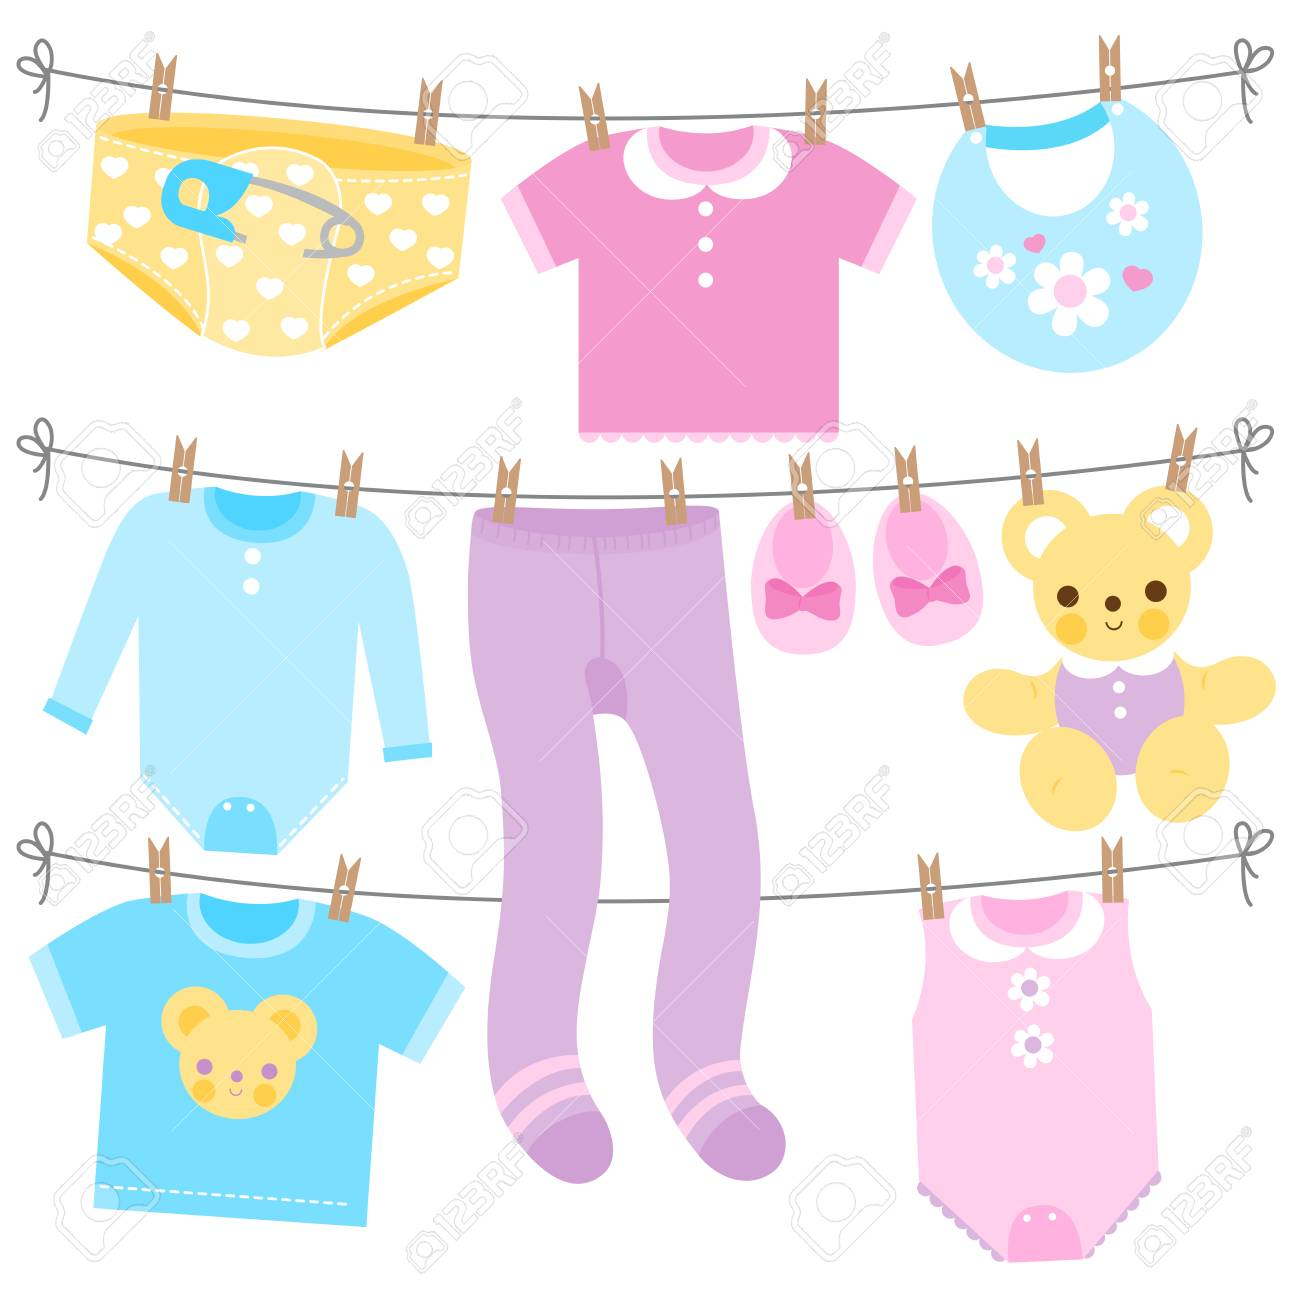 baby girl and baby boy clothes collection hanging on clothes rh 123rf com baby clothesline clipart free baby clothes clothesline clipart